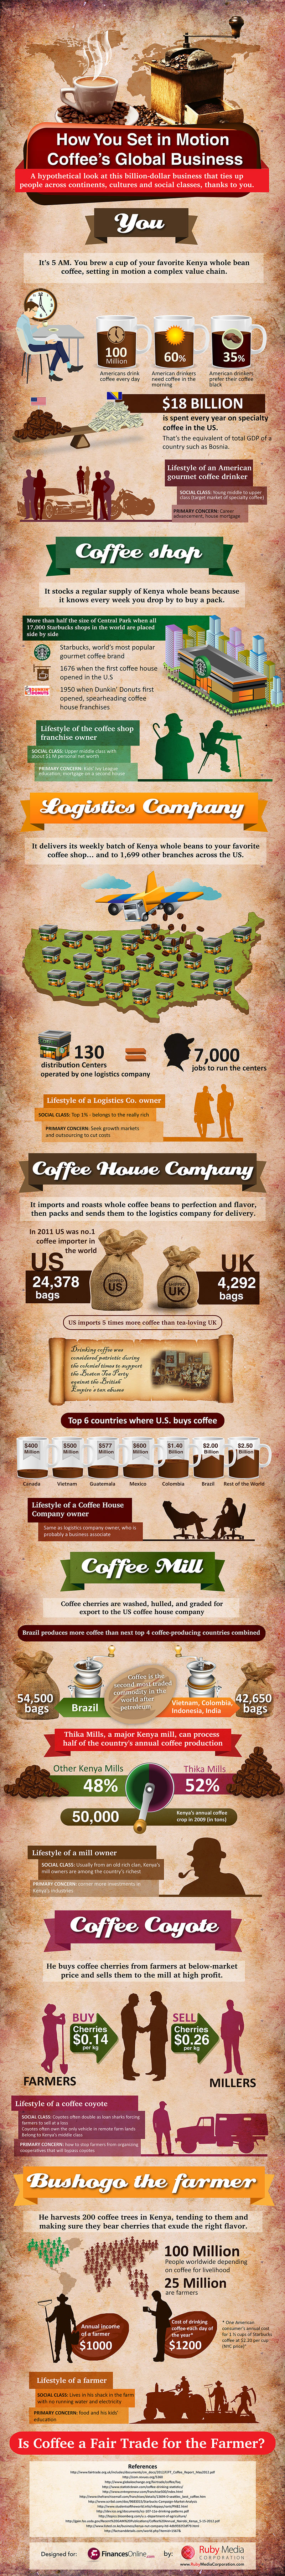 How You Set In Motion Coffee's Global Business